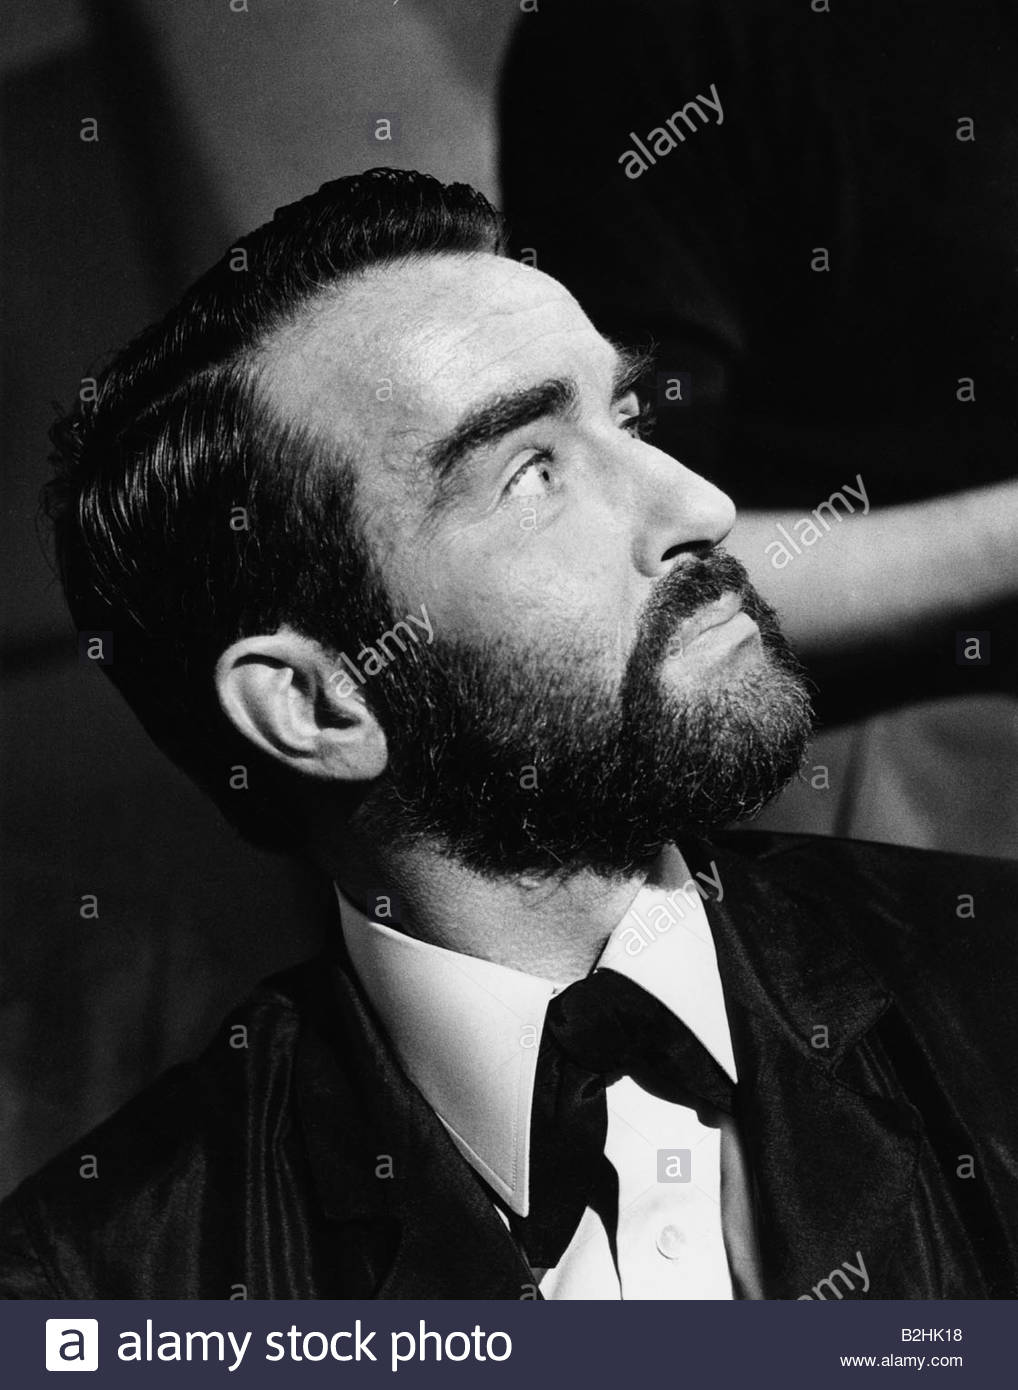 montgomery clift stock photos amp montgomery clift stock